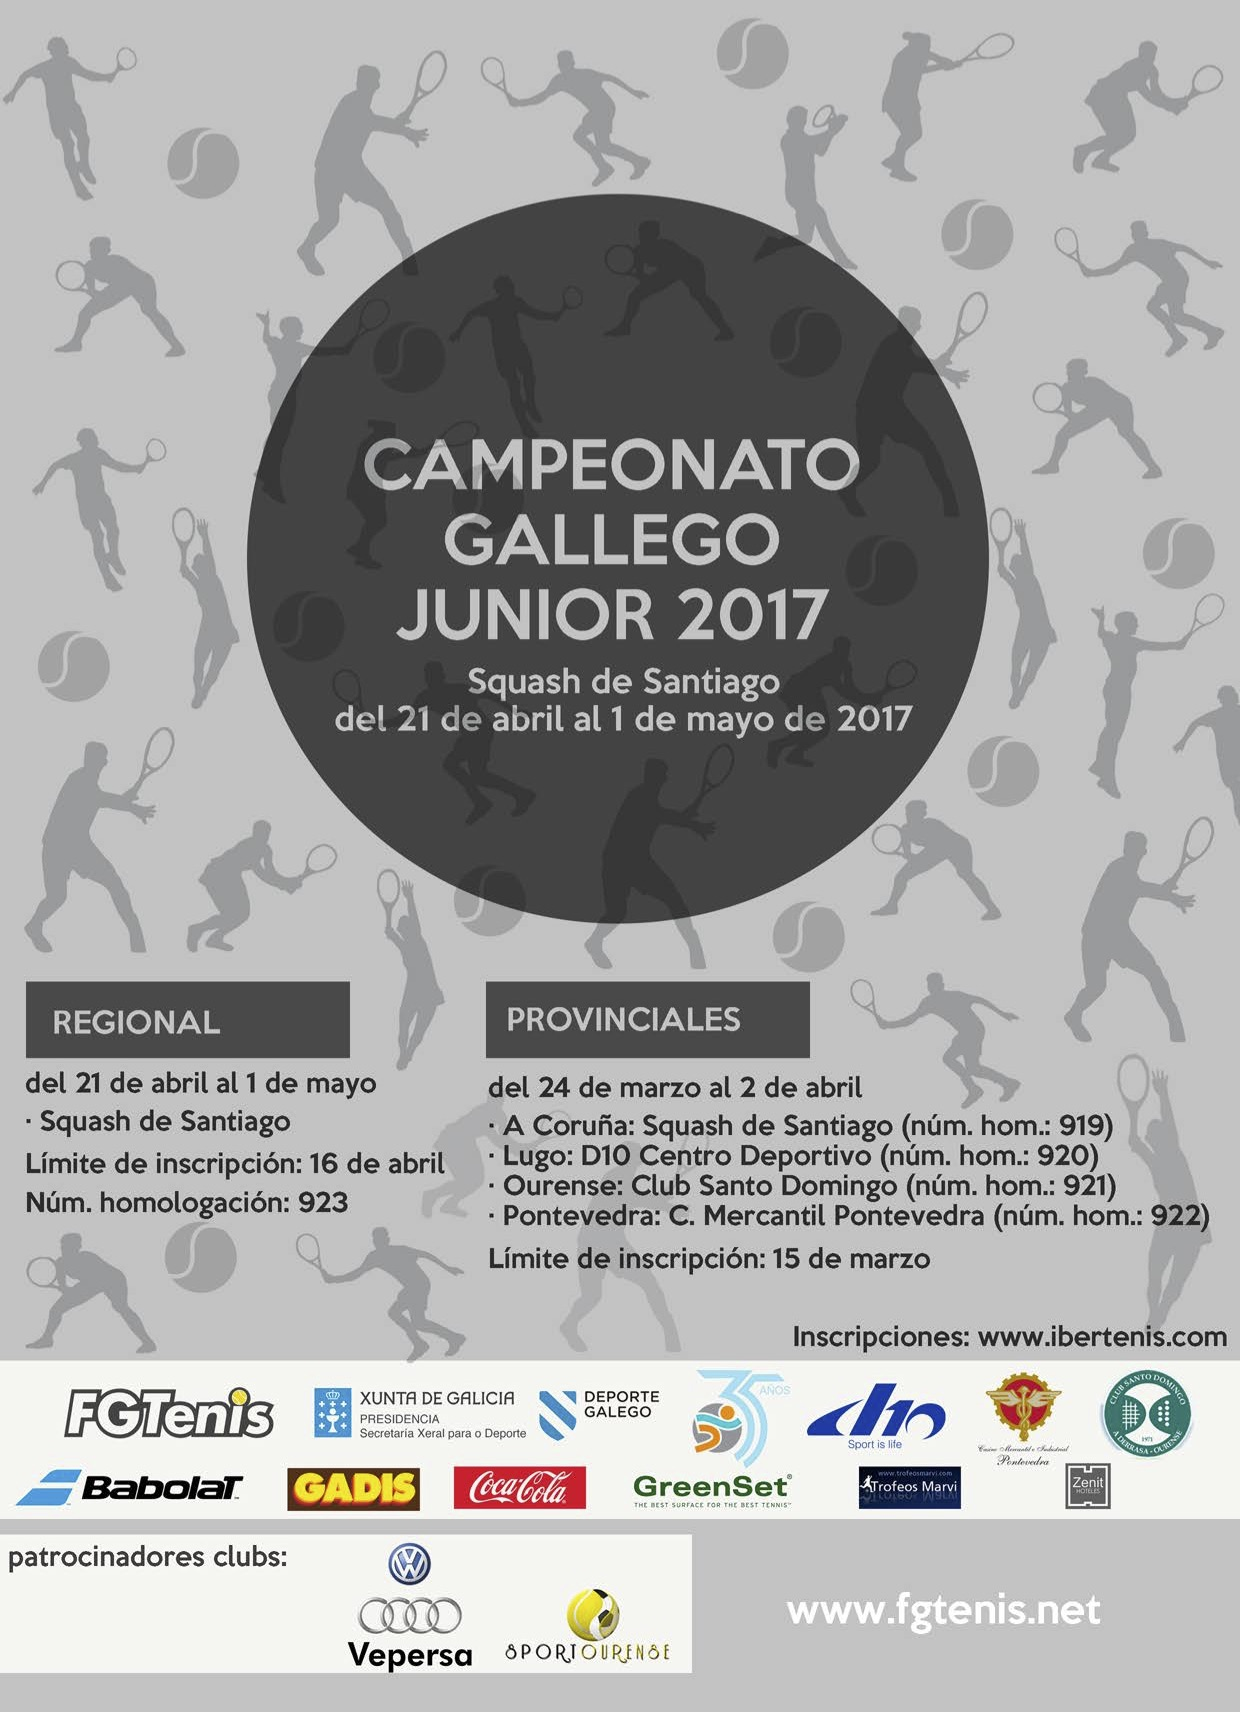 CAMPEONATO GALLEGO JUNIOR 2017